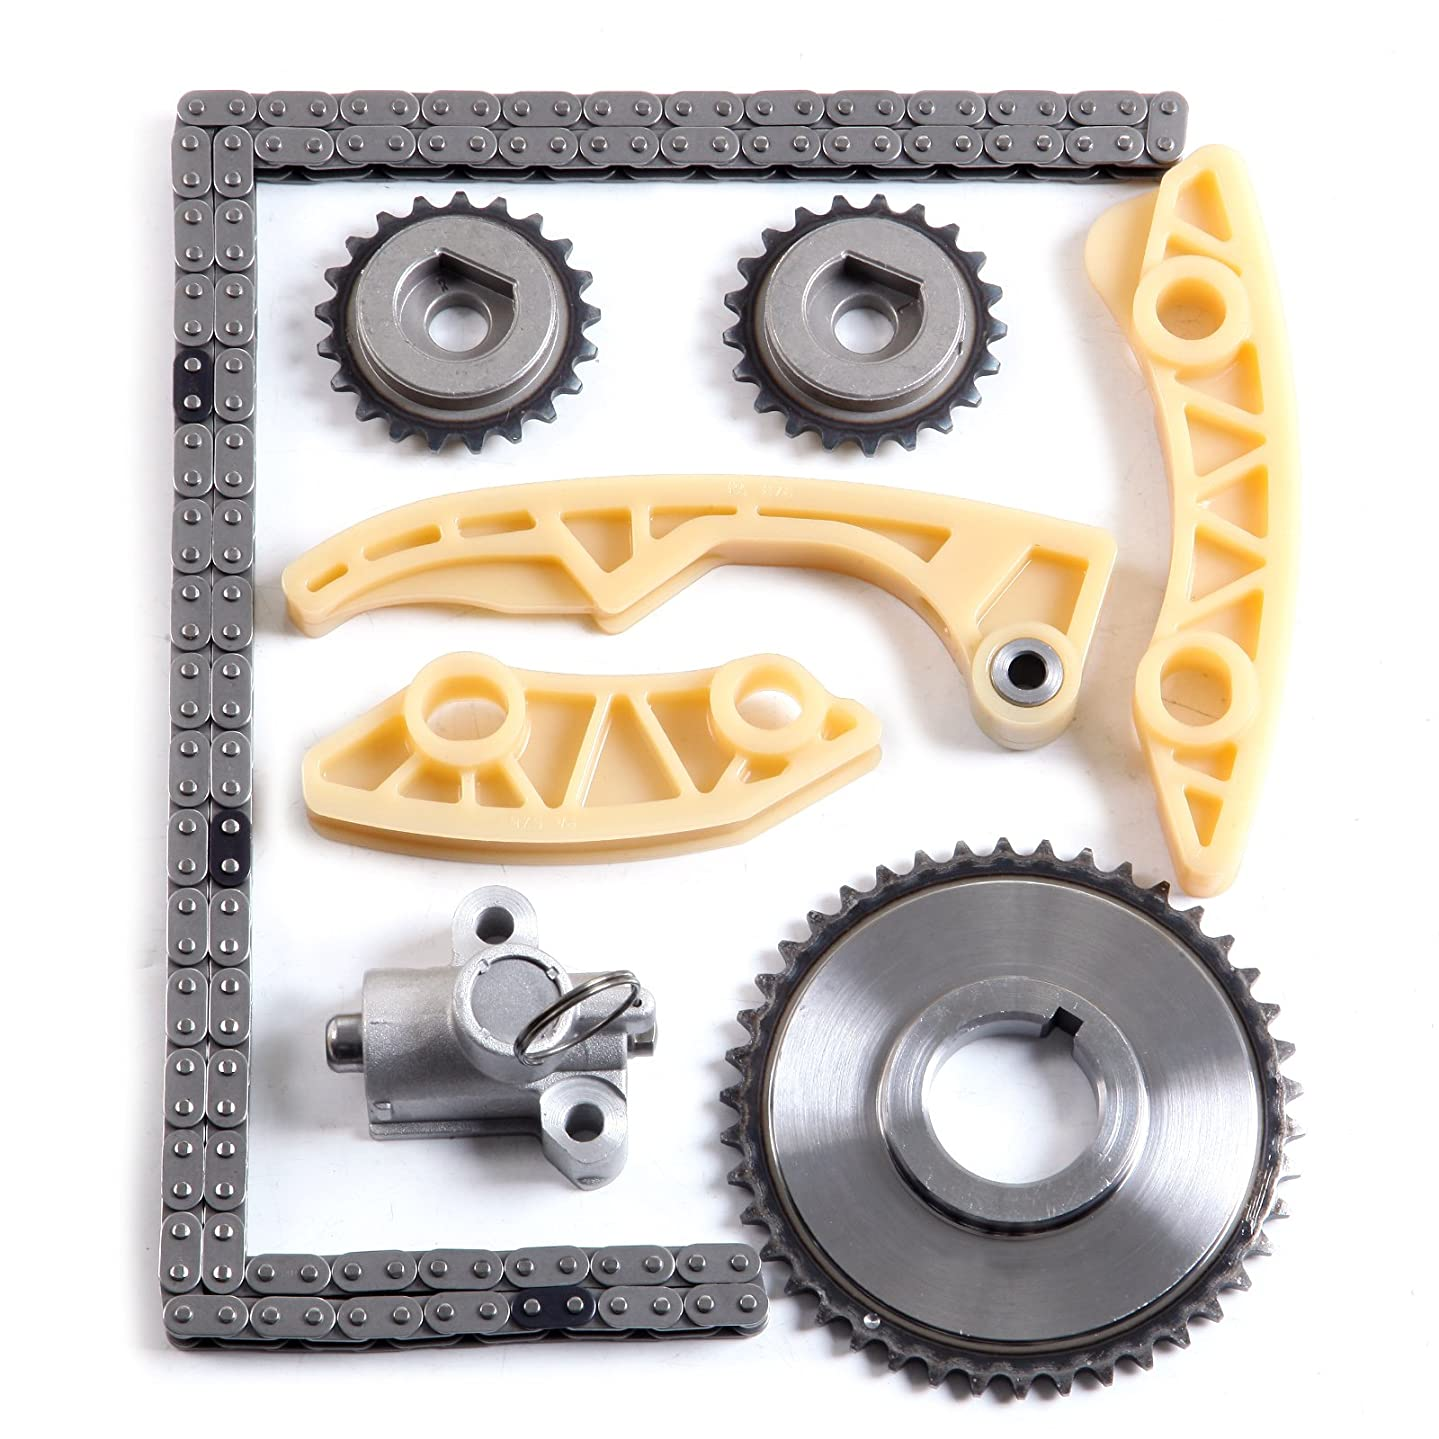 CCIYU Timing Part 9-4202S Timing Chain Tensioner Guide Rail Crank Sprocket fits for 2002 2003 2004 2005 Chevrolet Cavalier 2.2L 2198CC 134Cu. in. l4 Gas DOHC Naturally Aspirated